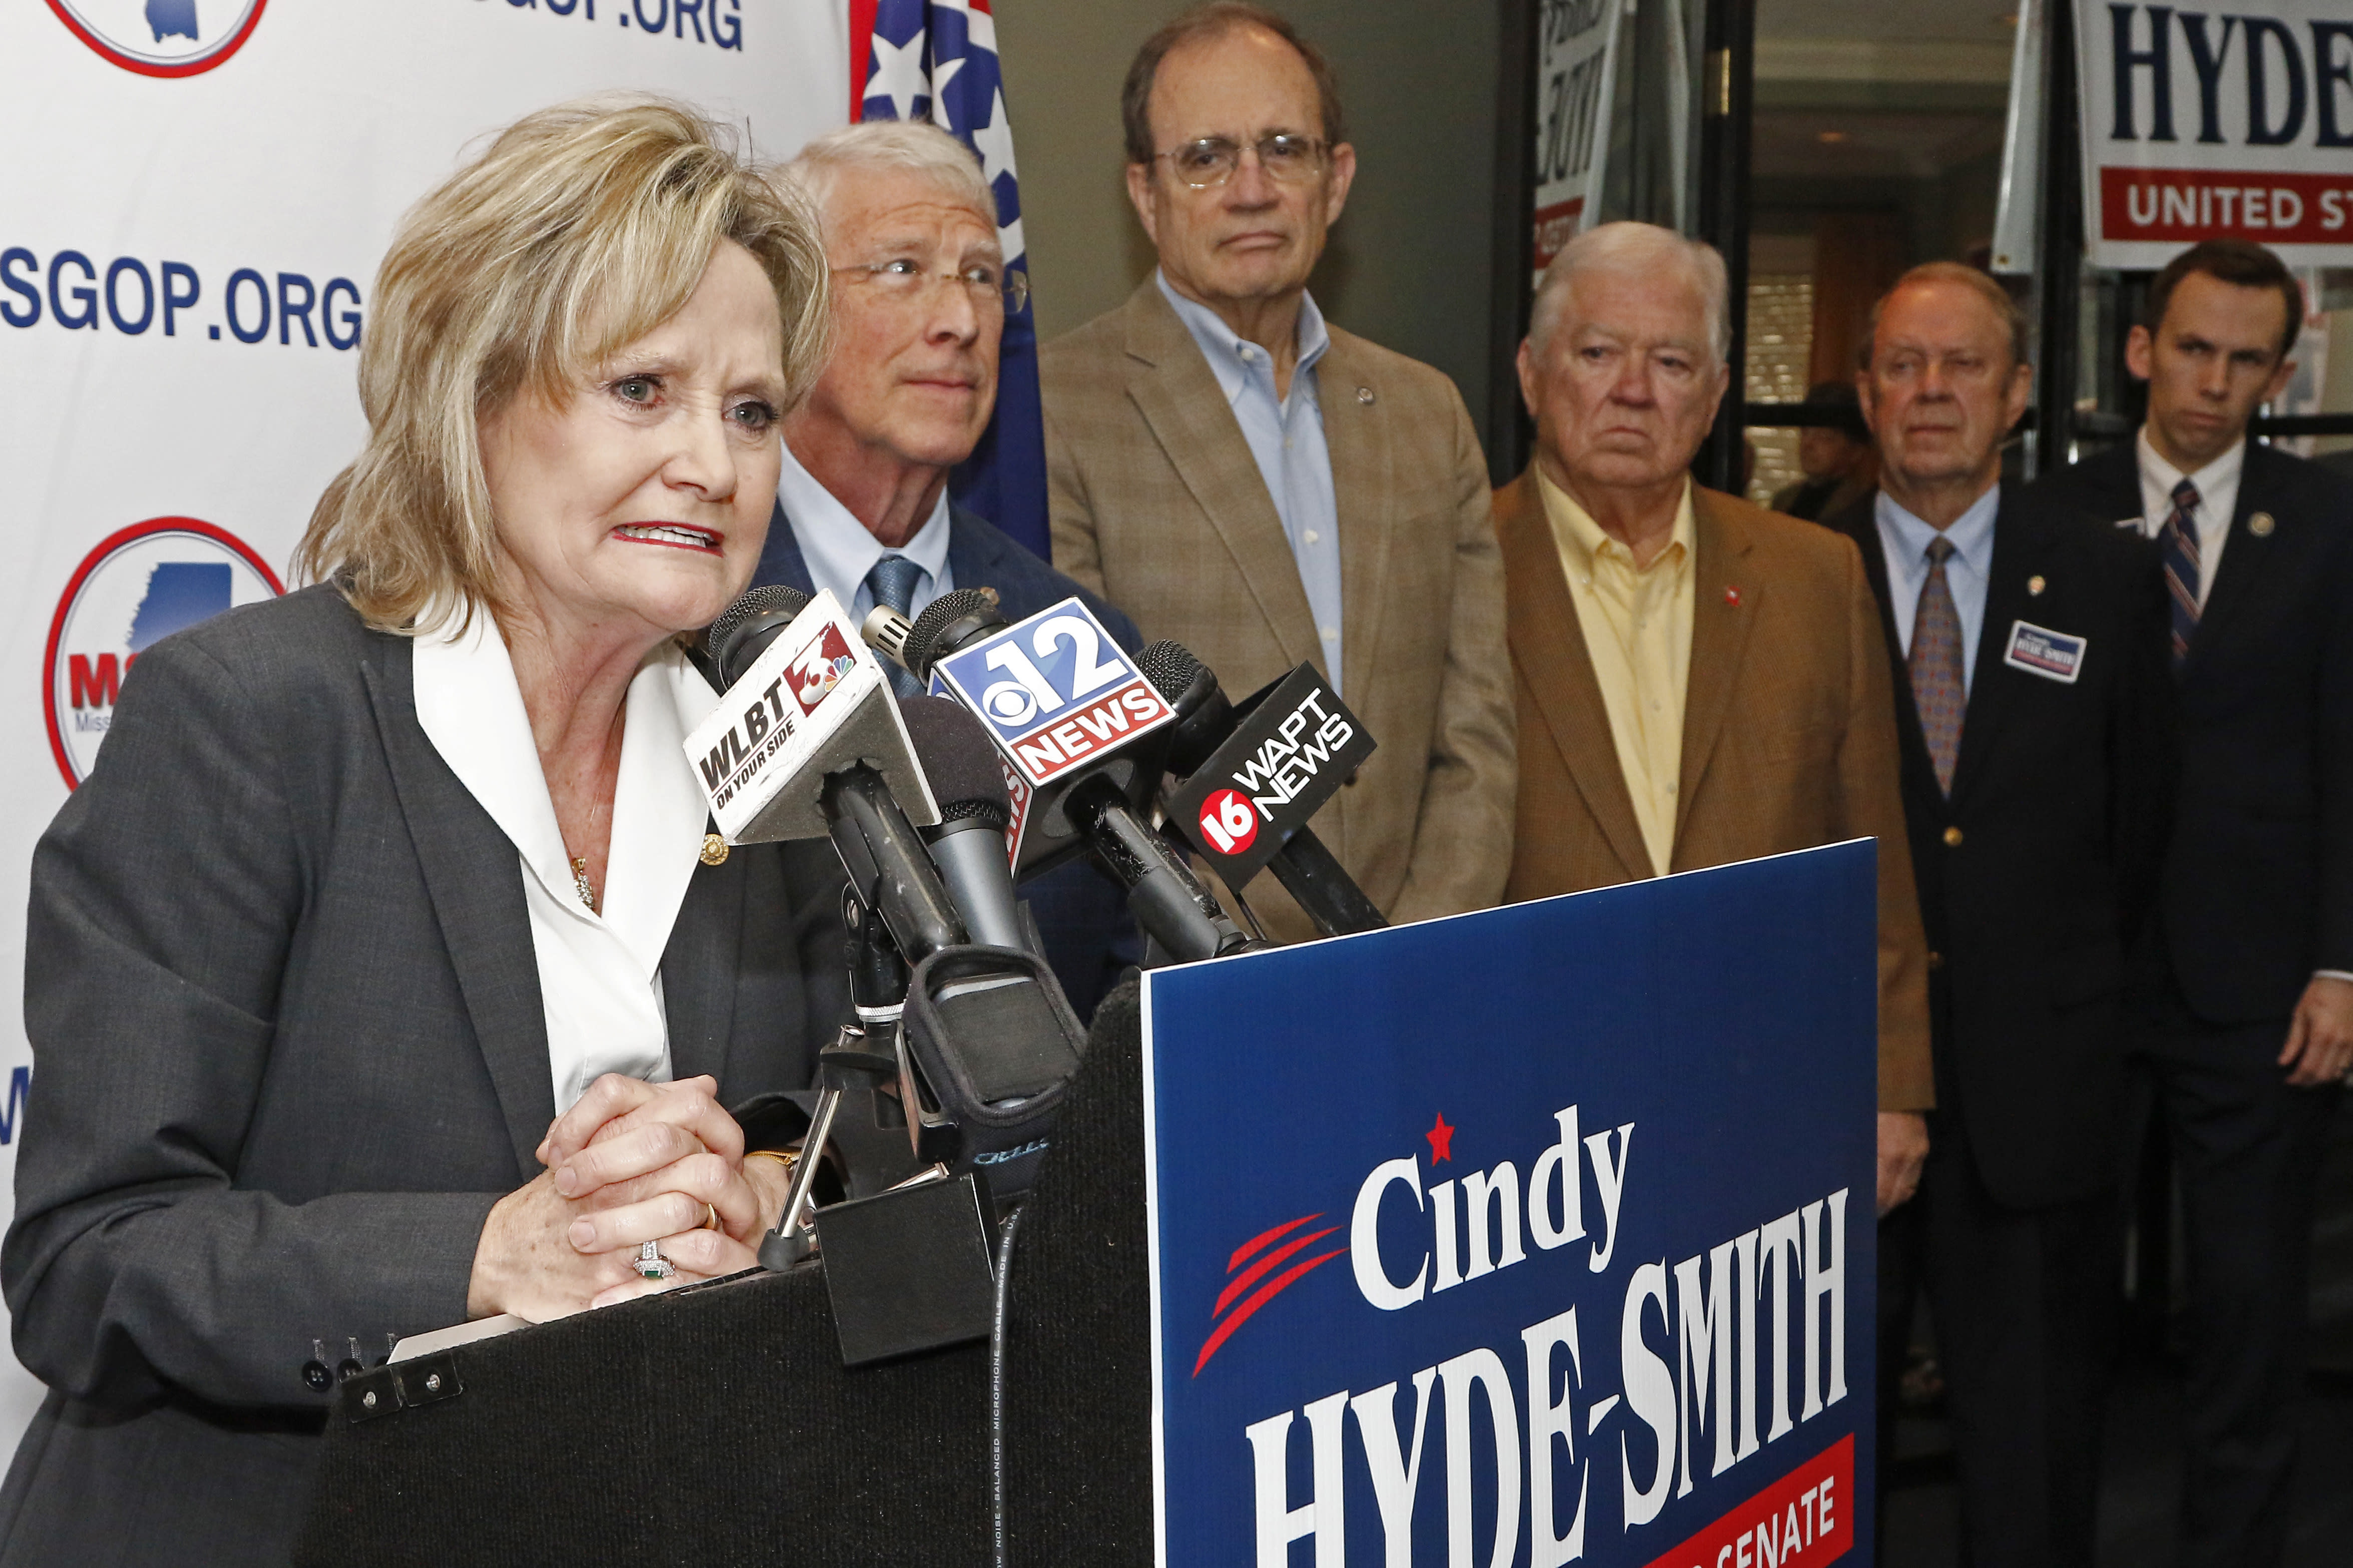 U.S. Sen. Cindy Hyde-Smith, R-Miss., left, thanks fellow Republican U.S. Sen. Roger Wicker, of Mississippi, second from left, Lt. Gov.-elect Delbert Hosemann, center, and former Mississippi Republican Gov. Haley Barbour, for supporting her bid for re-election, Friday, Jan. 3, 2020, at state GOP headquarters in Jackson, Miss. Hyde-Smith filed papers to run at party headquarters, with many Republican elected officials in attendance. She is expected to campaign by emphasizing her loyalty to President Donald Trump. (AP Photo/Rogelio V. Solis)